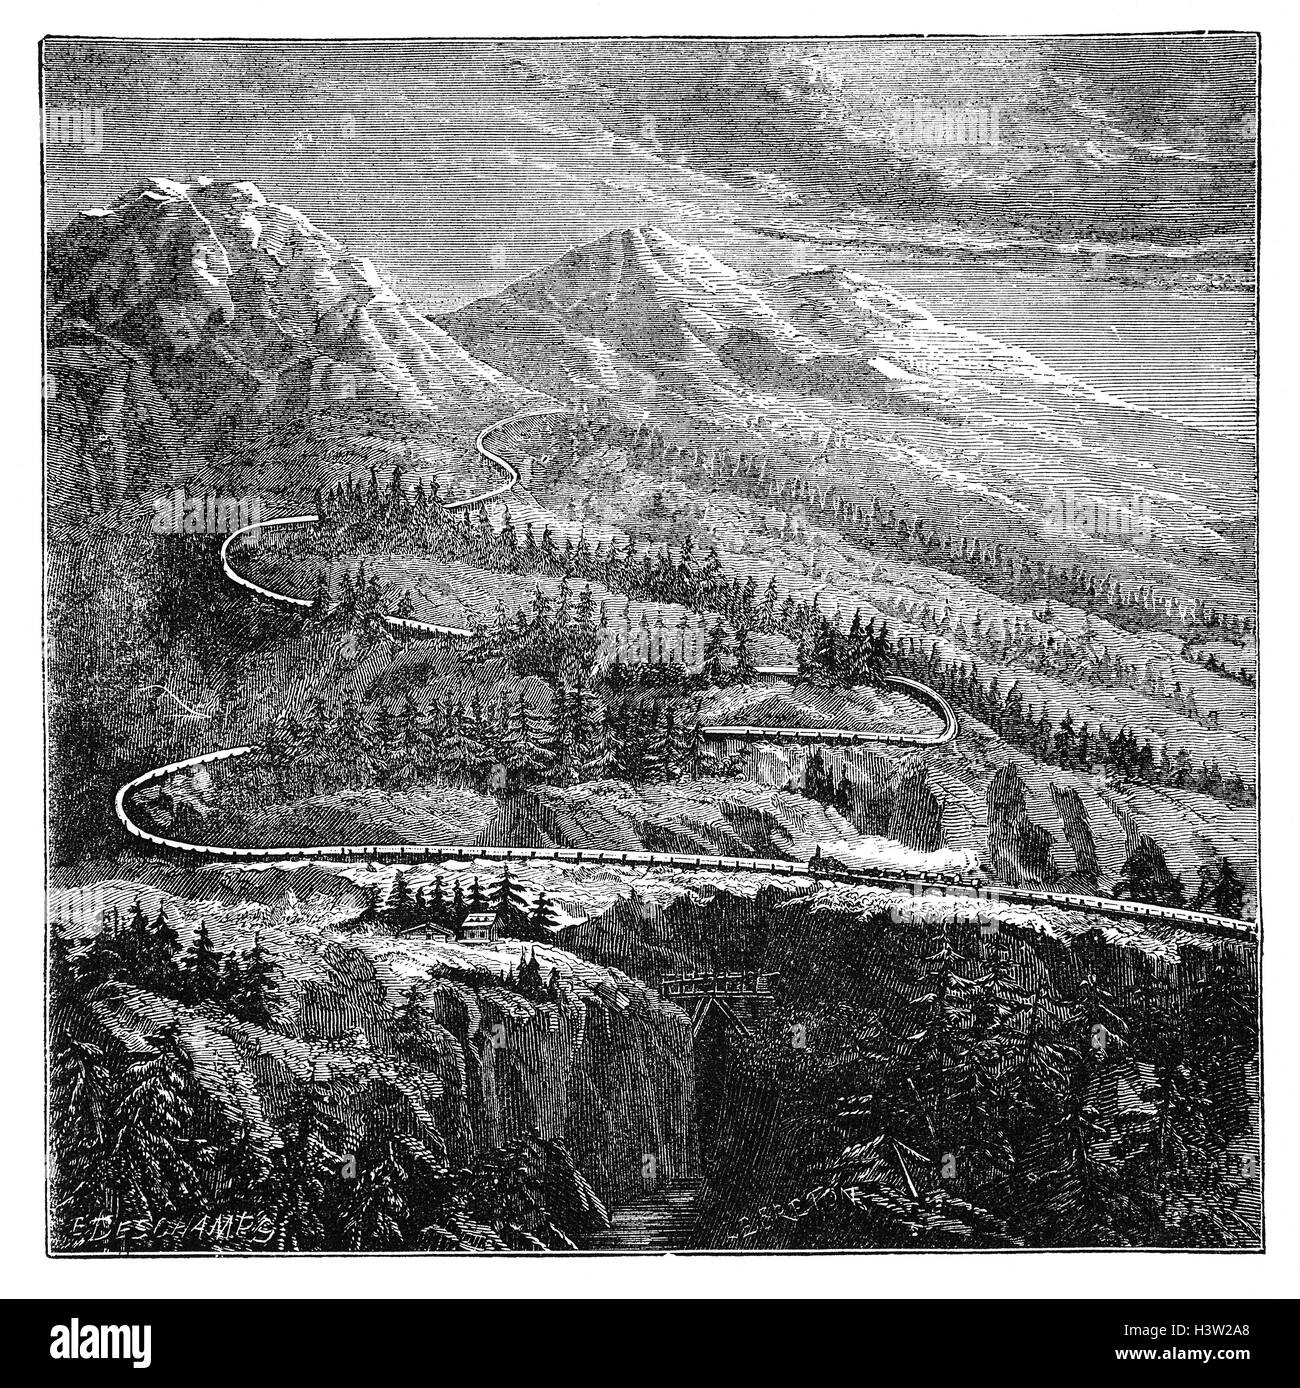 The Mont Cenis Pass Railway was the first mountain railway in the world and was built in during the construction - Stock Image